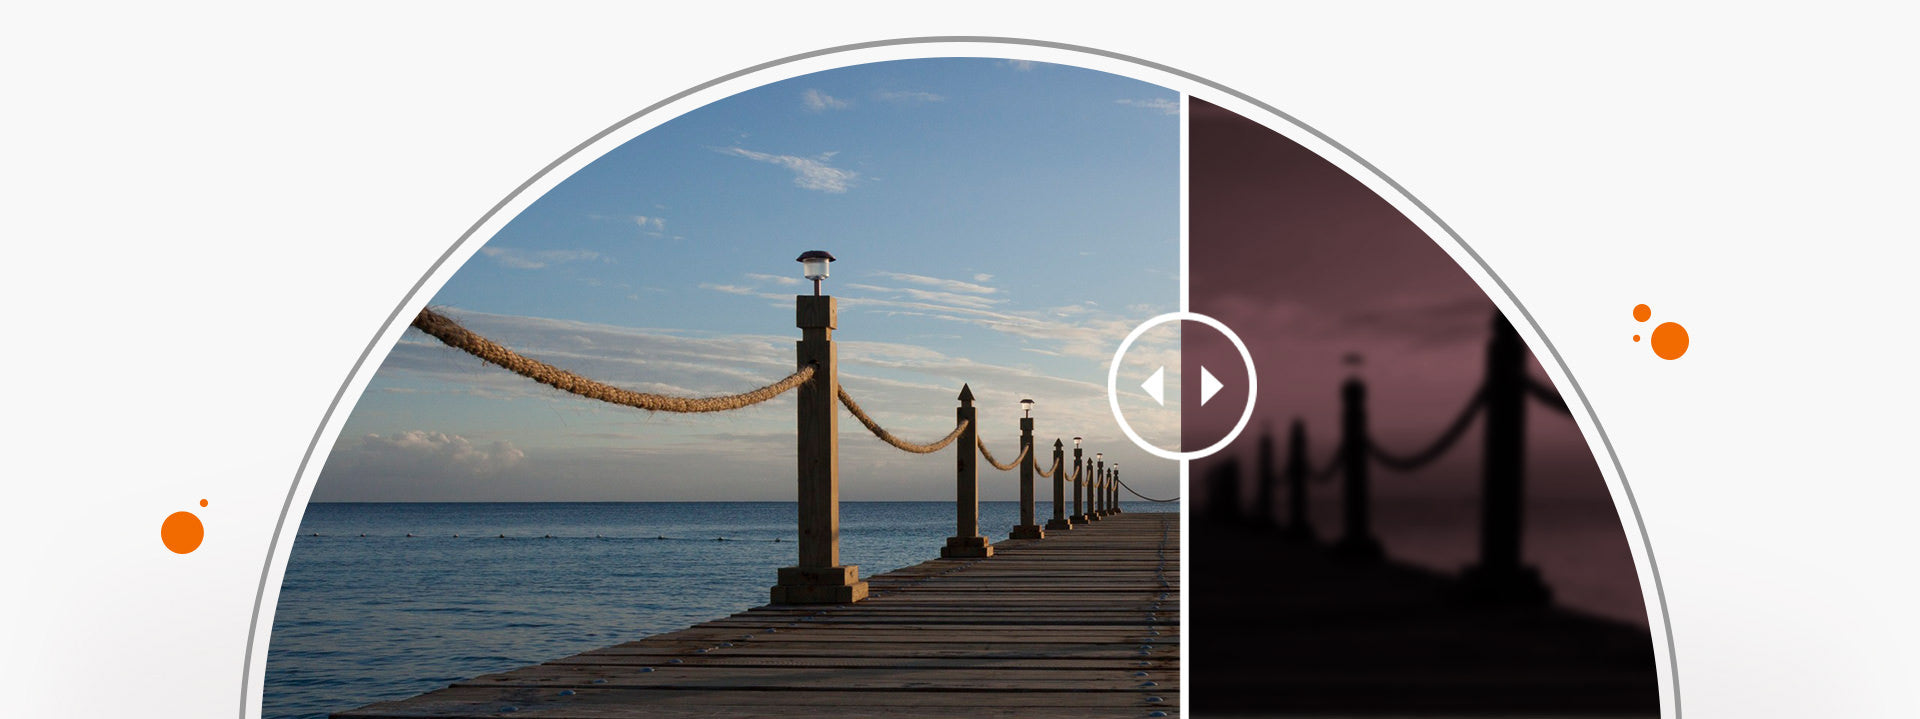 Before & After Image Slider